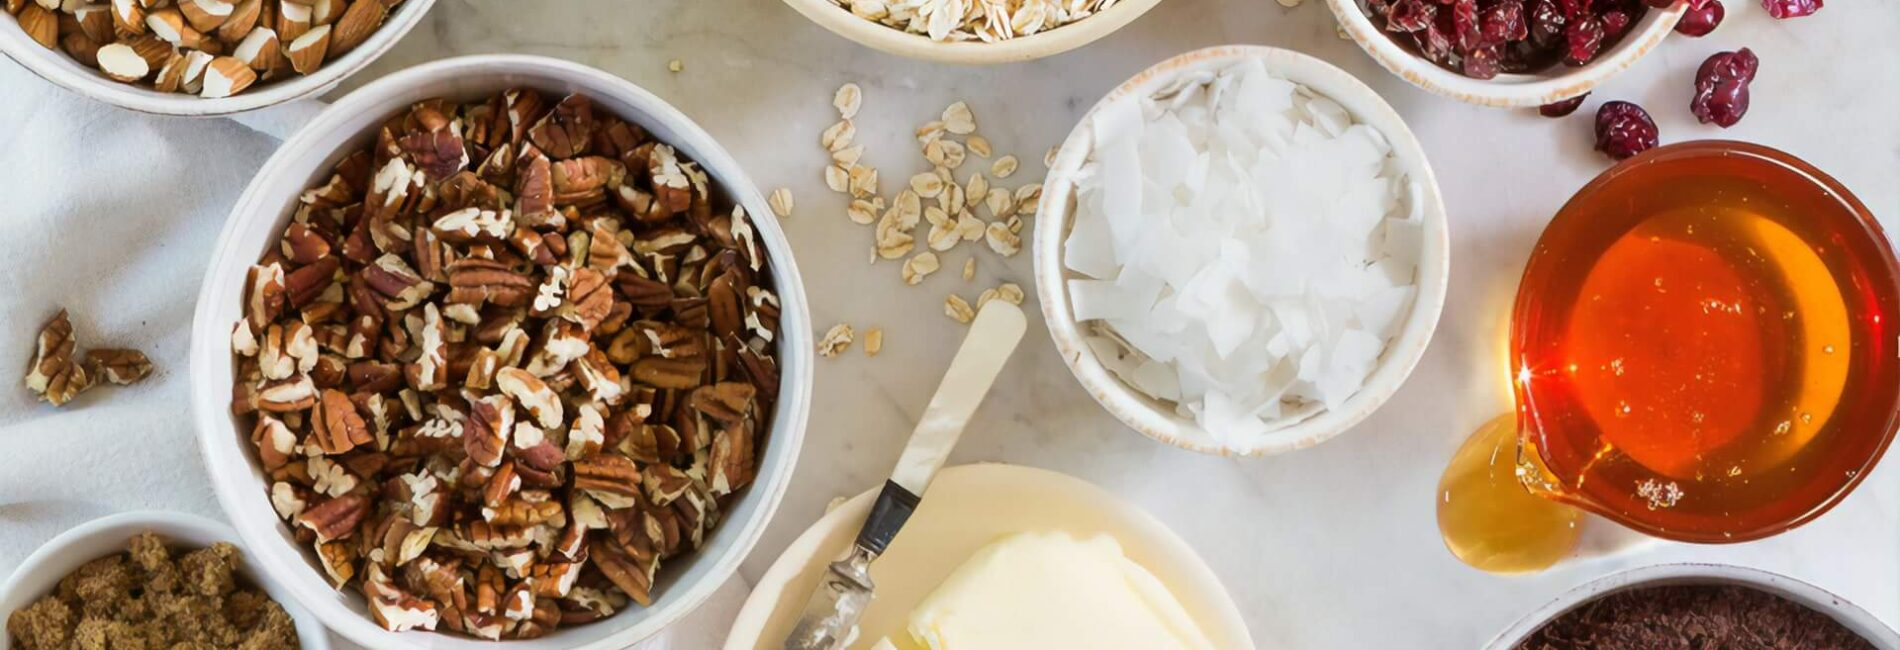 Save Your Money–Make Your Own Healthy Granola Mix